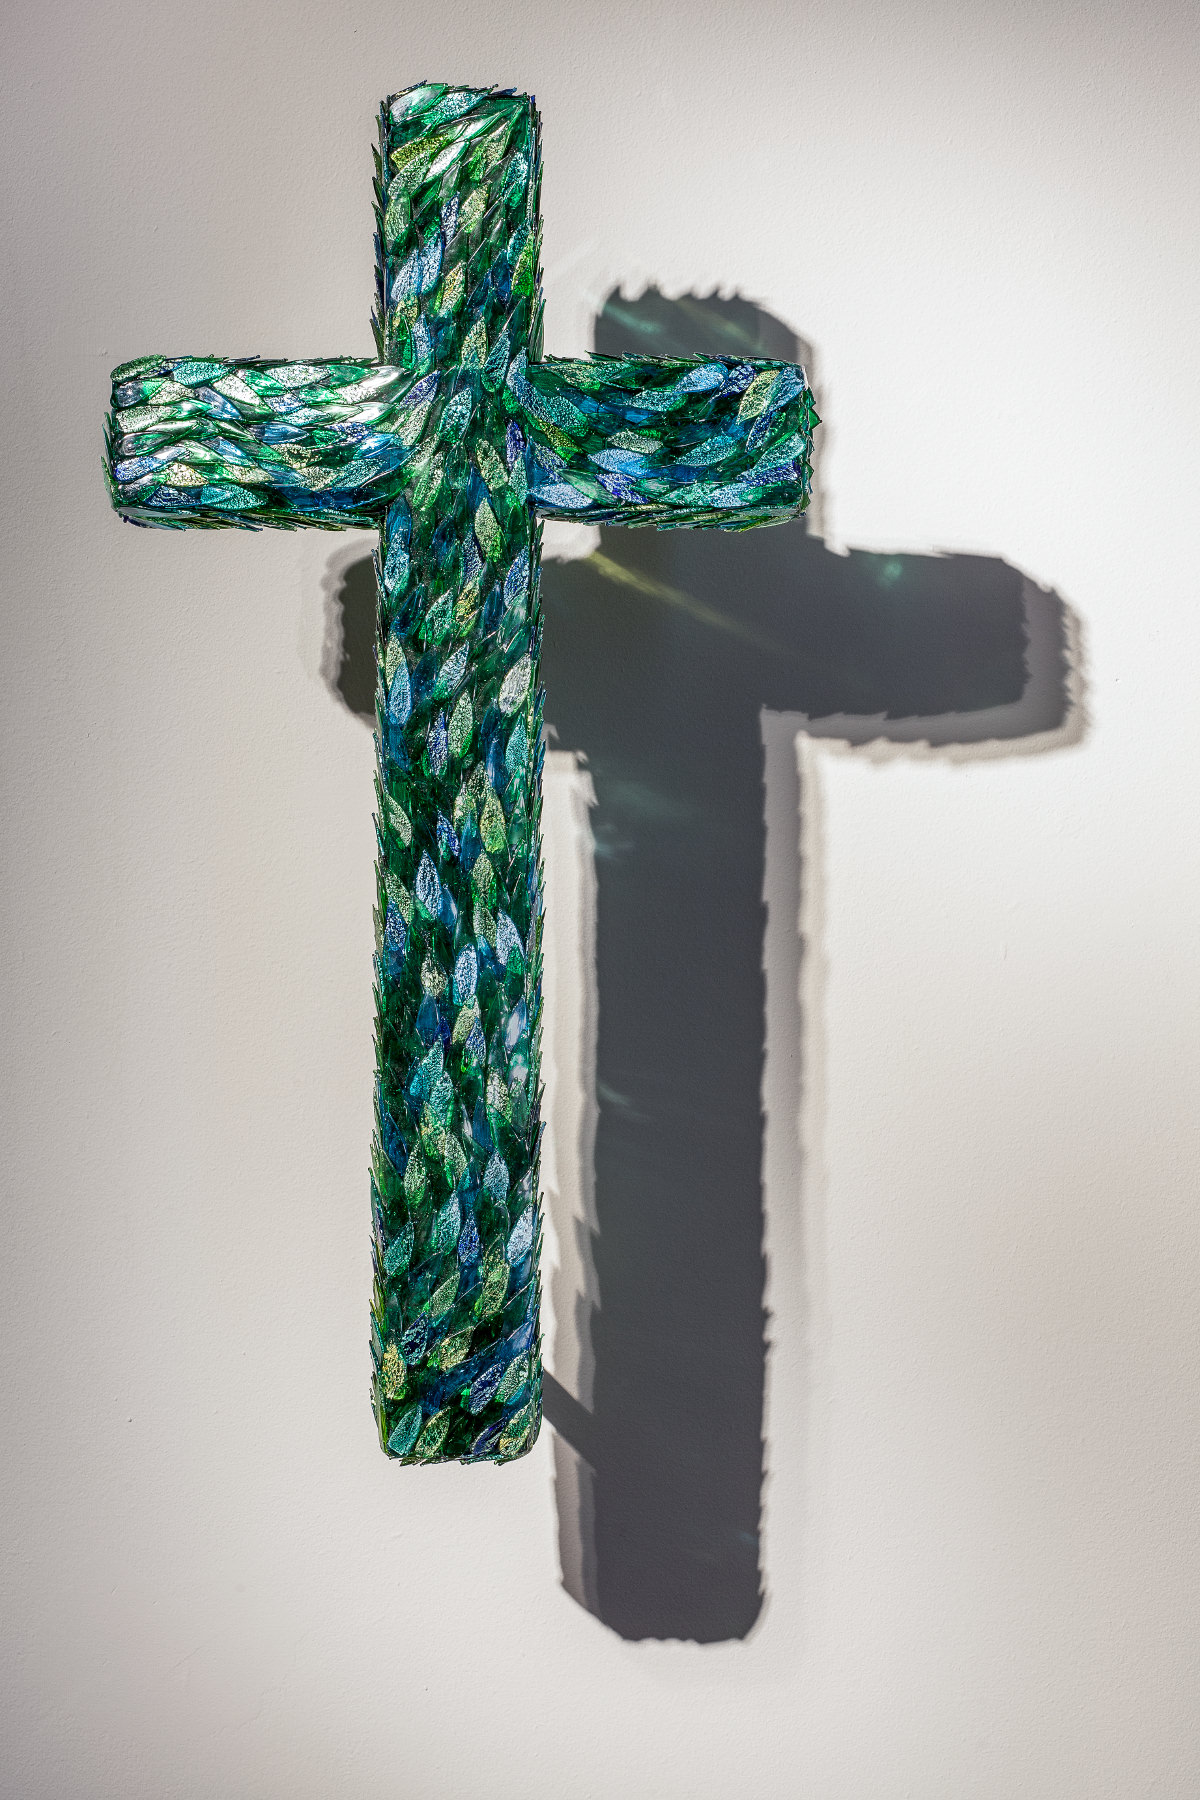 Jan Fabre - Cross for the Garden of Delight